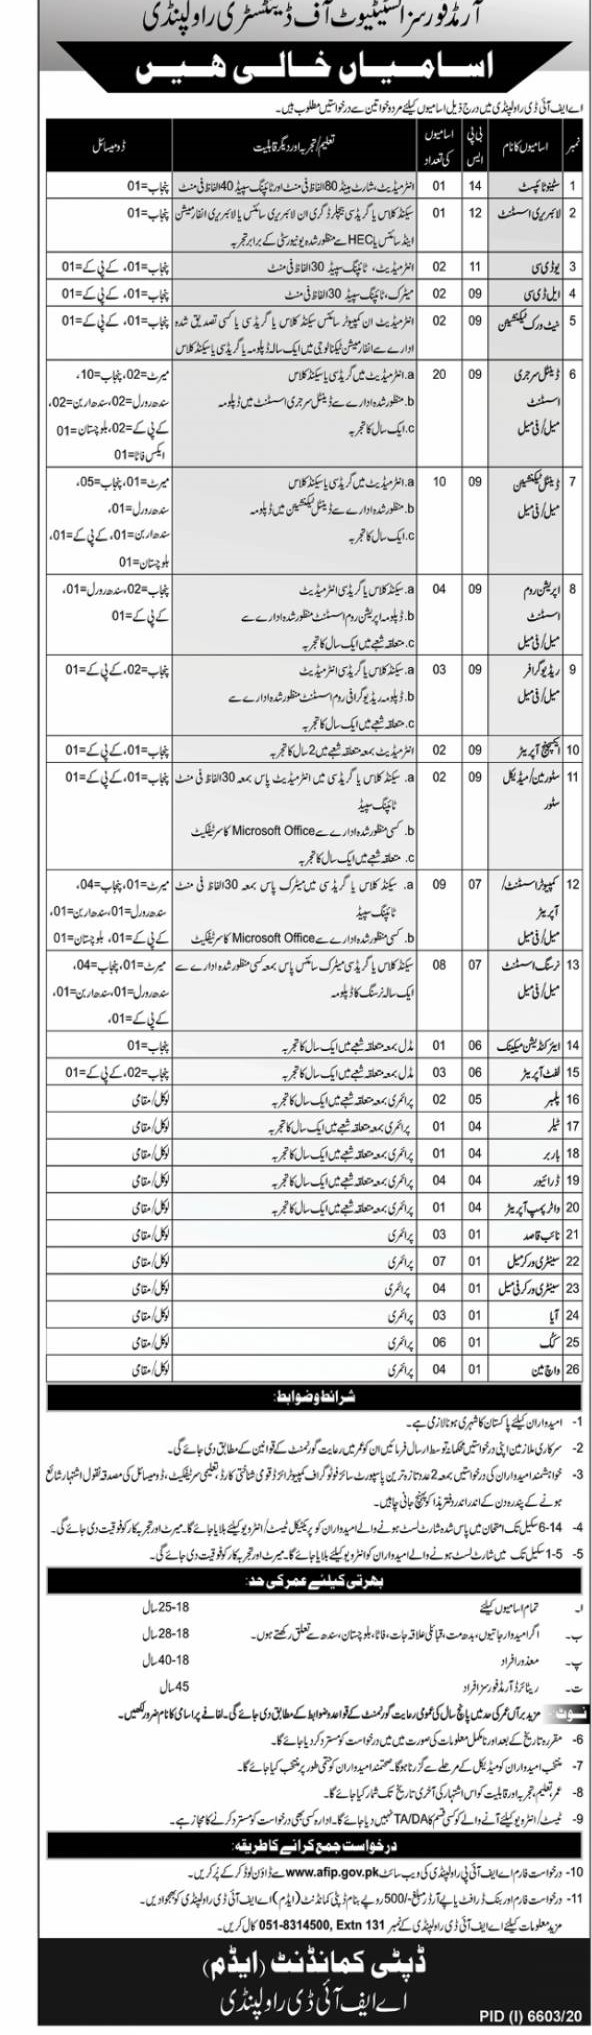 Armed Forces Institute Of Dentistry Rawalpindi Jobs June 2021 (106 Posts) Matric-Inter Level